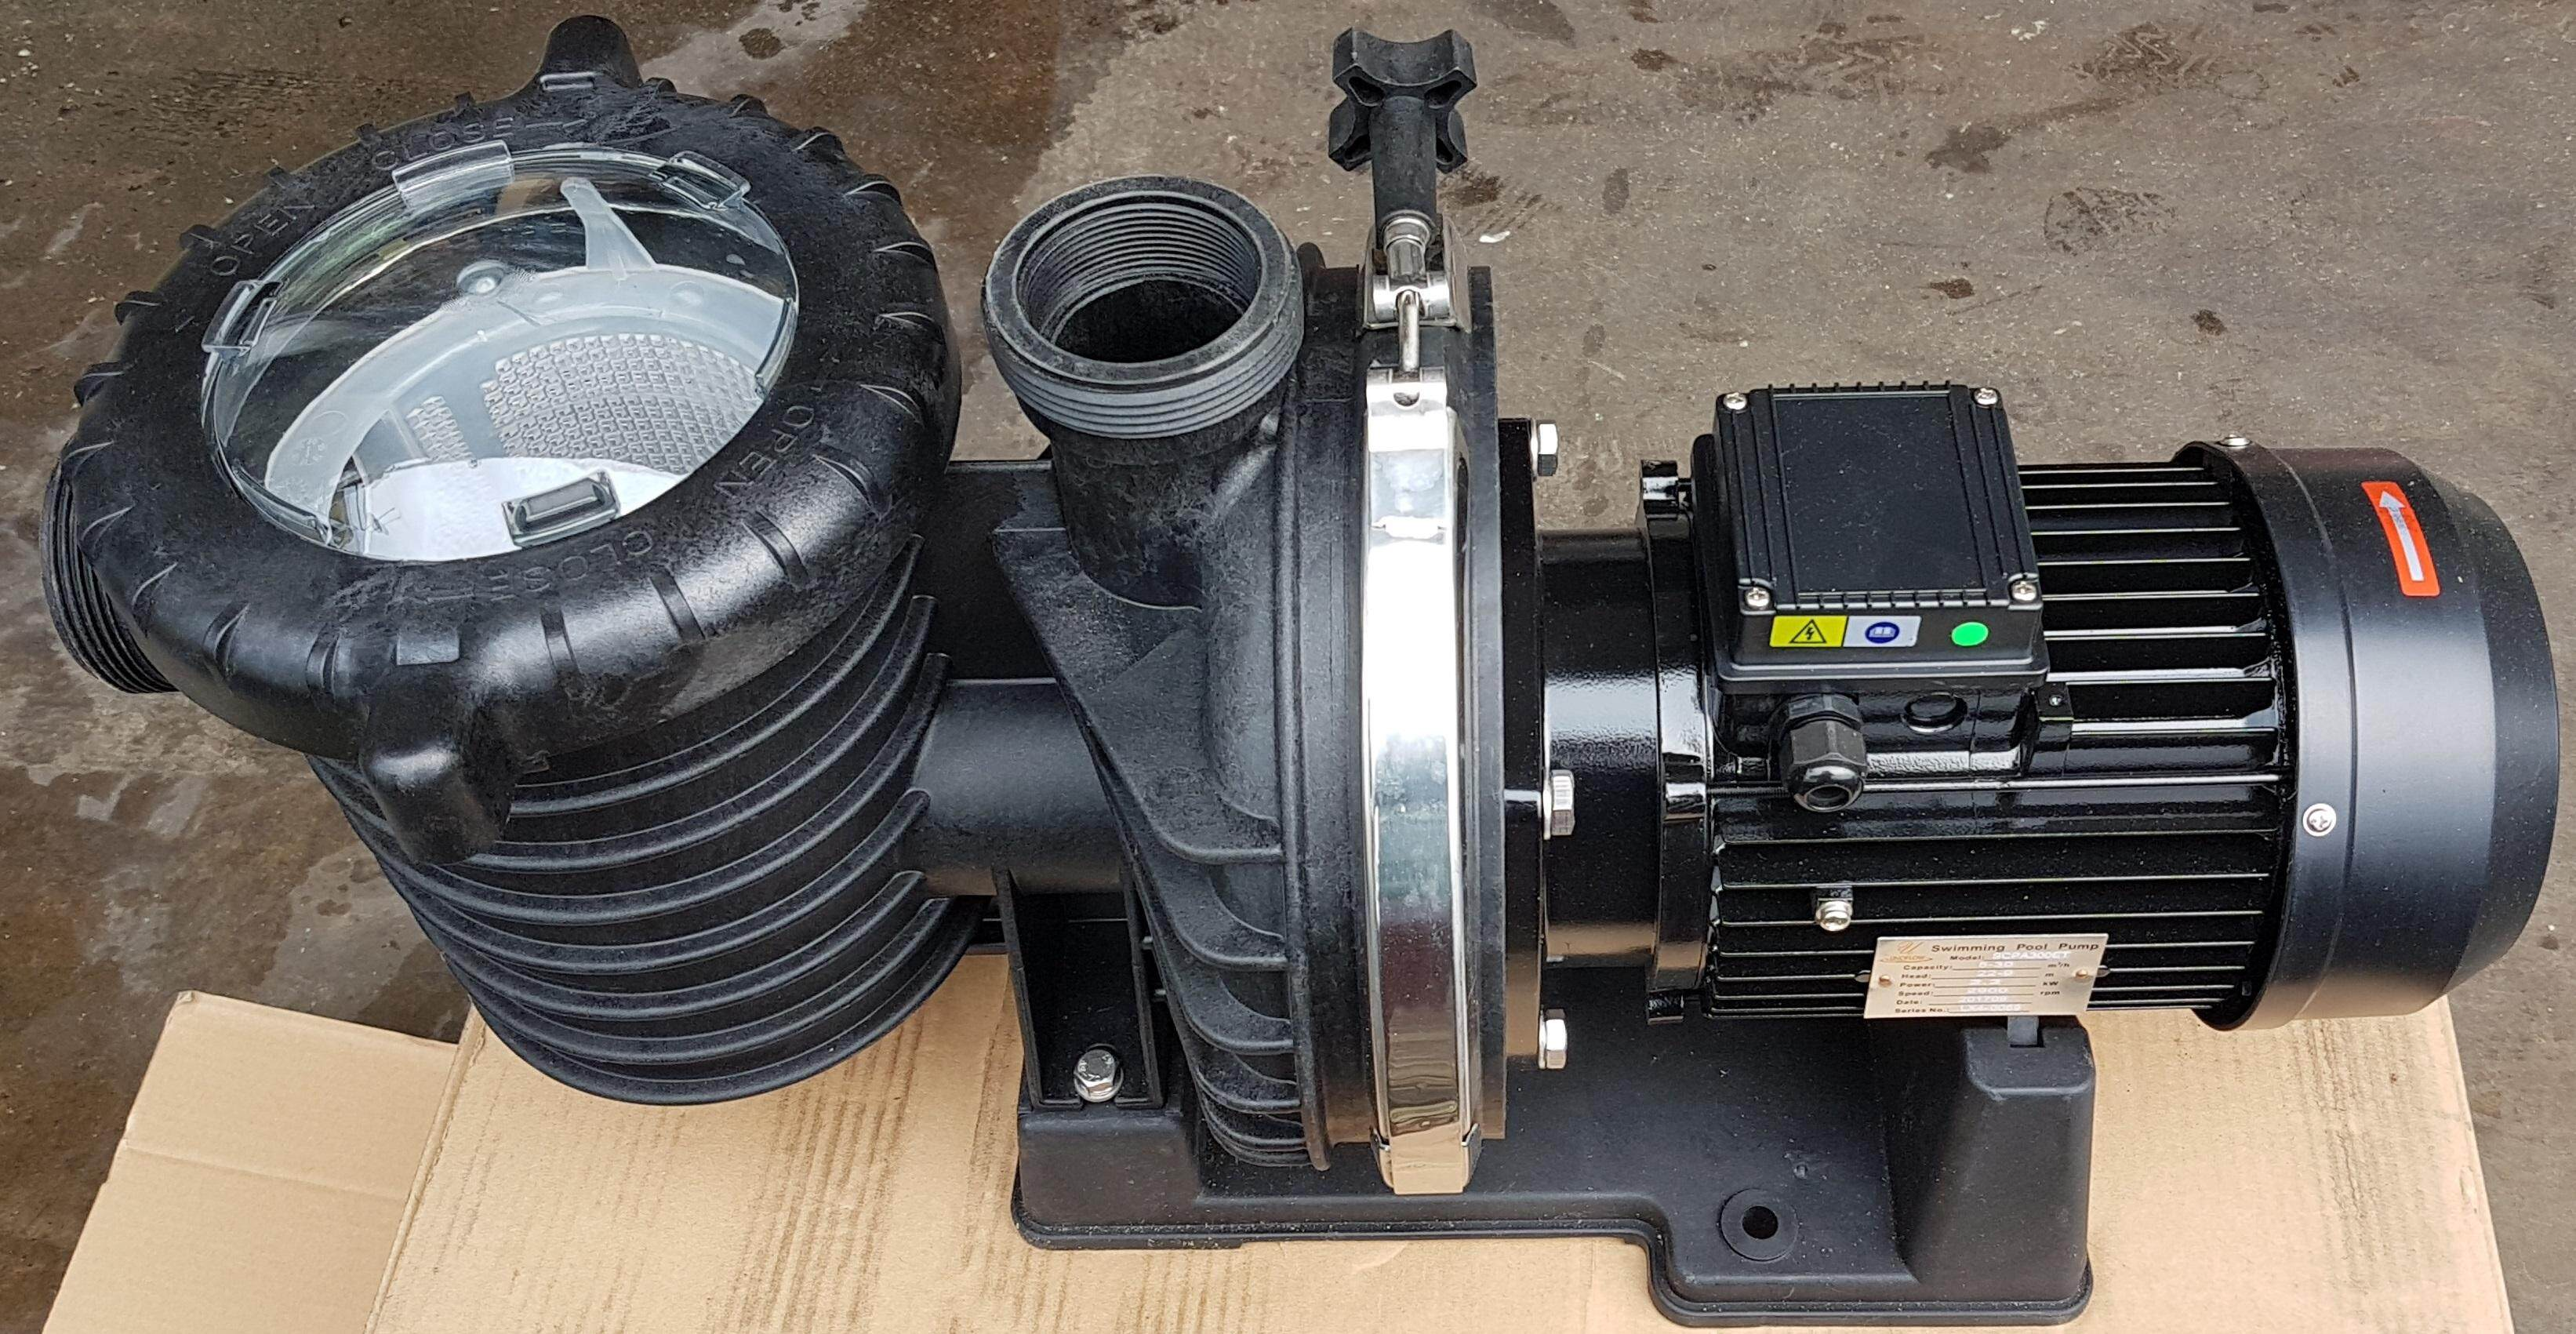 3 hp 2.2 kw 2900 rpm 415 v swimming pool swim tank automatic pressure booster water power supply motor pump electric air high pressure press filter clean cleaner cleaning socket connector collect blow spray roller handle flow blower tube pipe hose nozzle